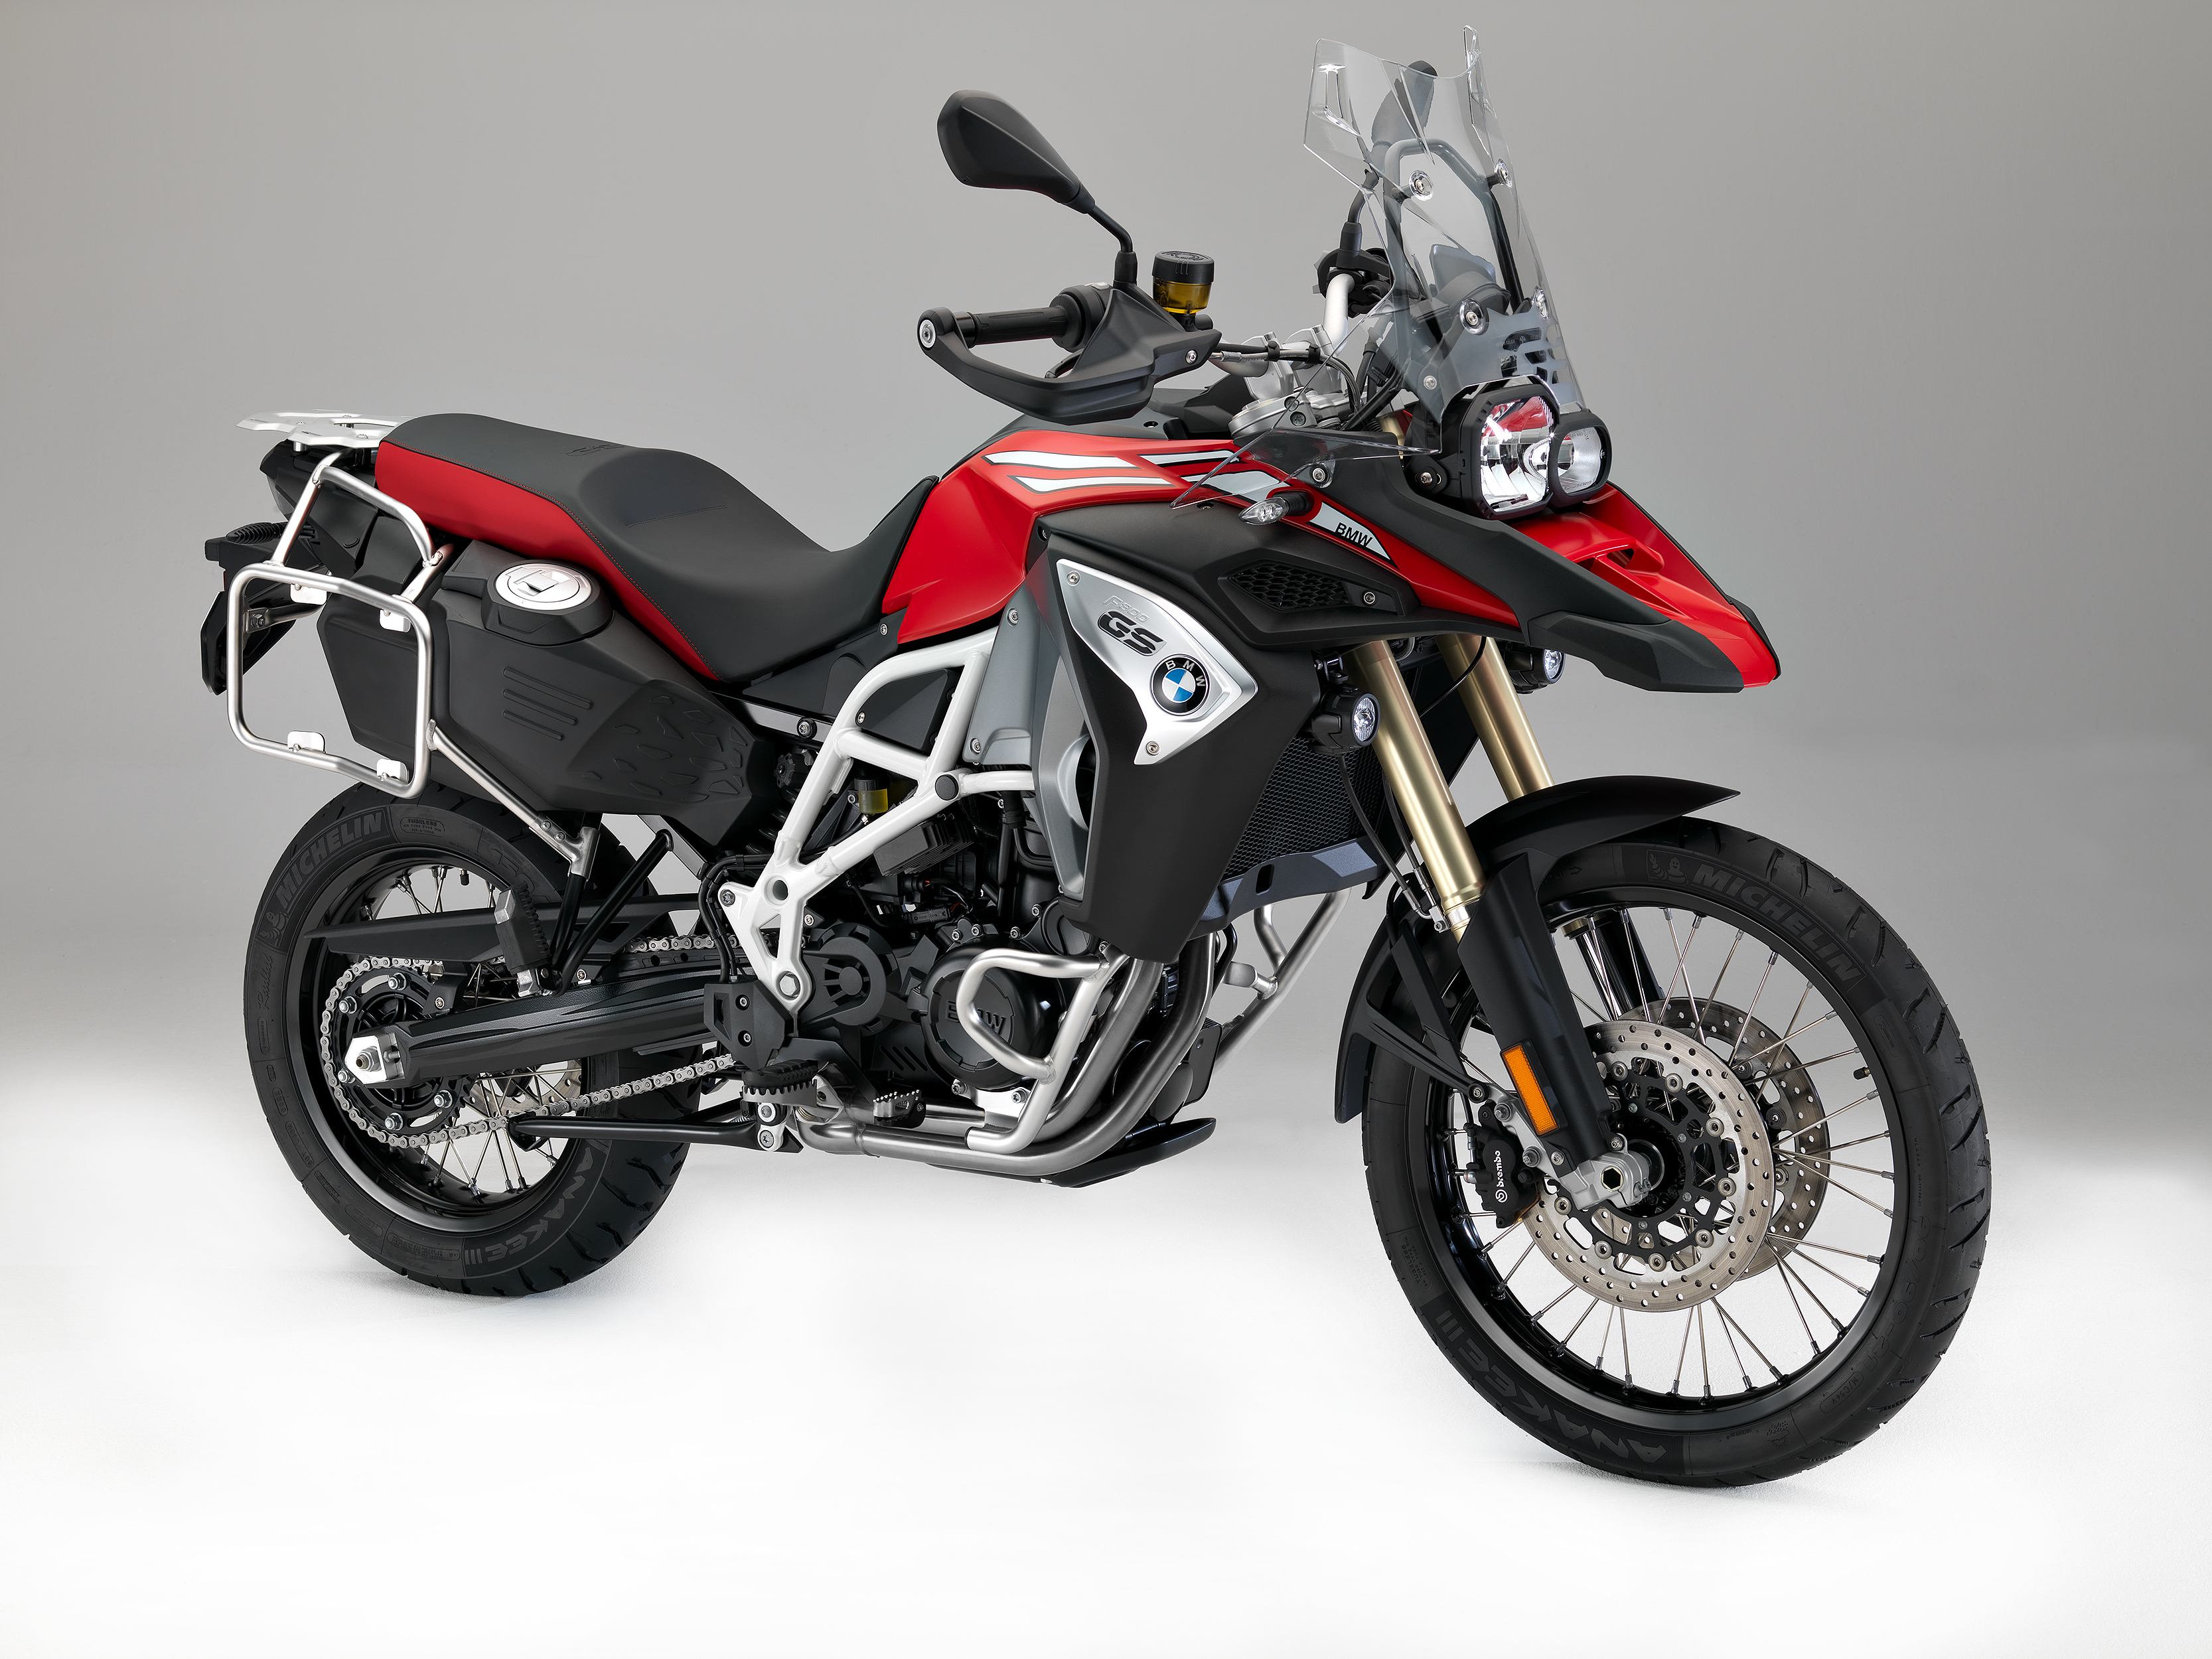 2017 Bmw Motorrad F700 Gs F800 Gs And F800 Gs Adventure